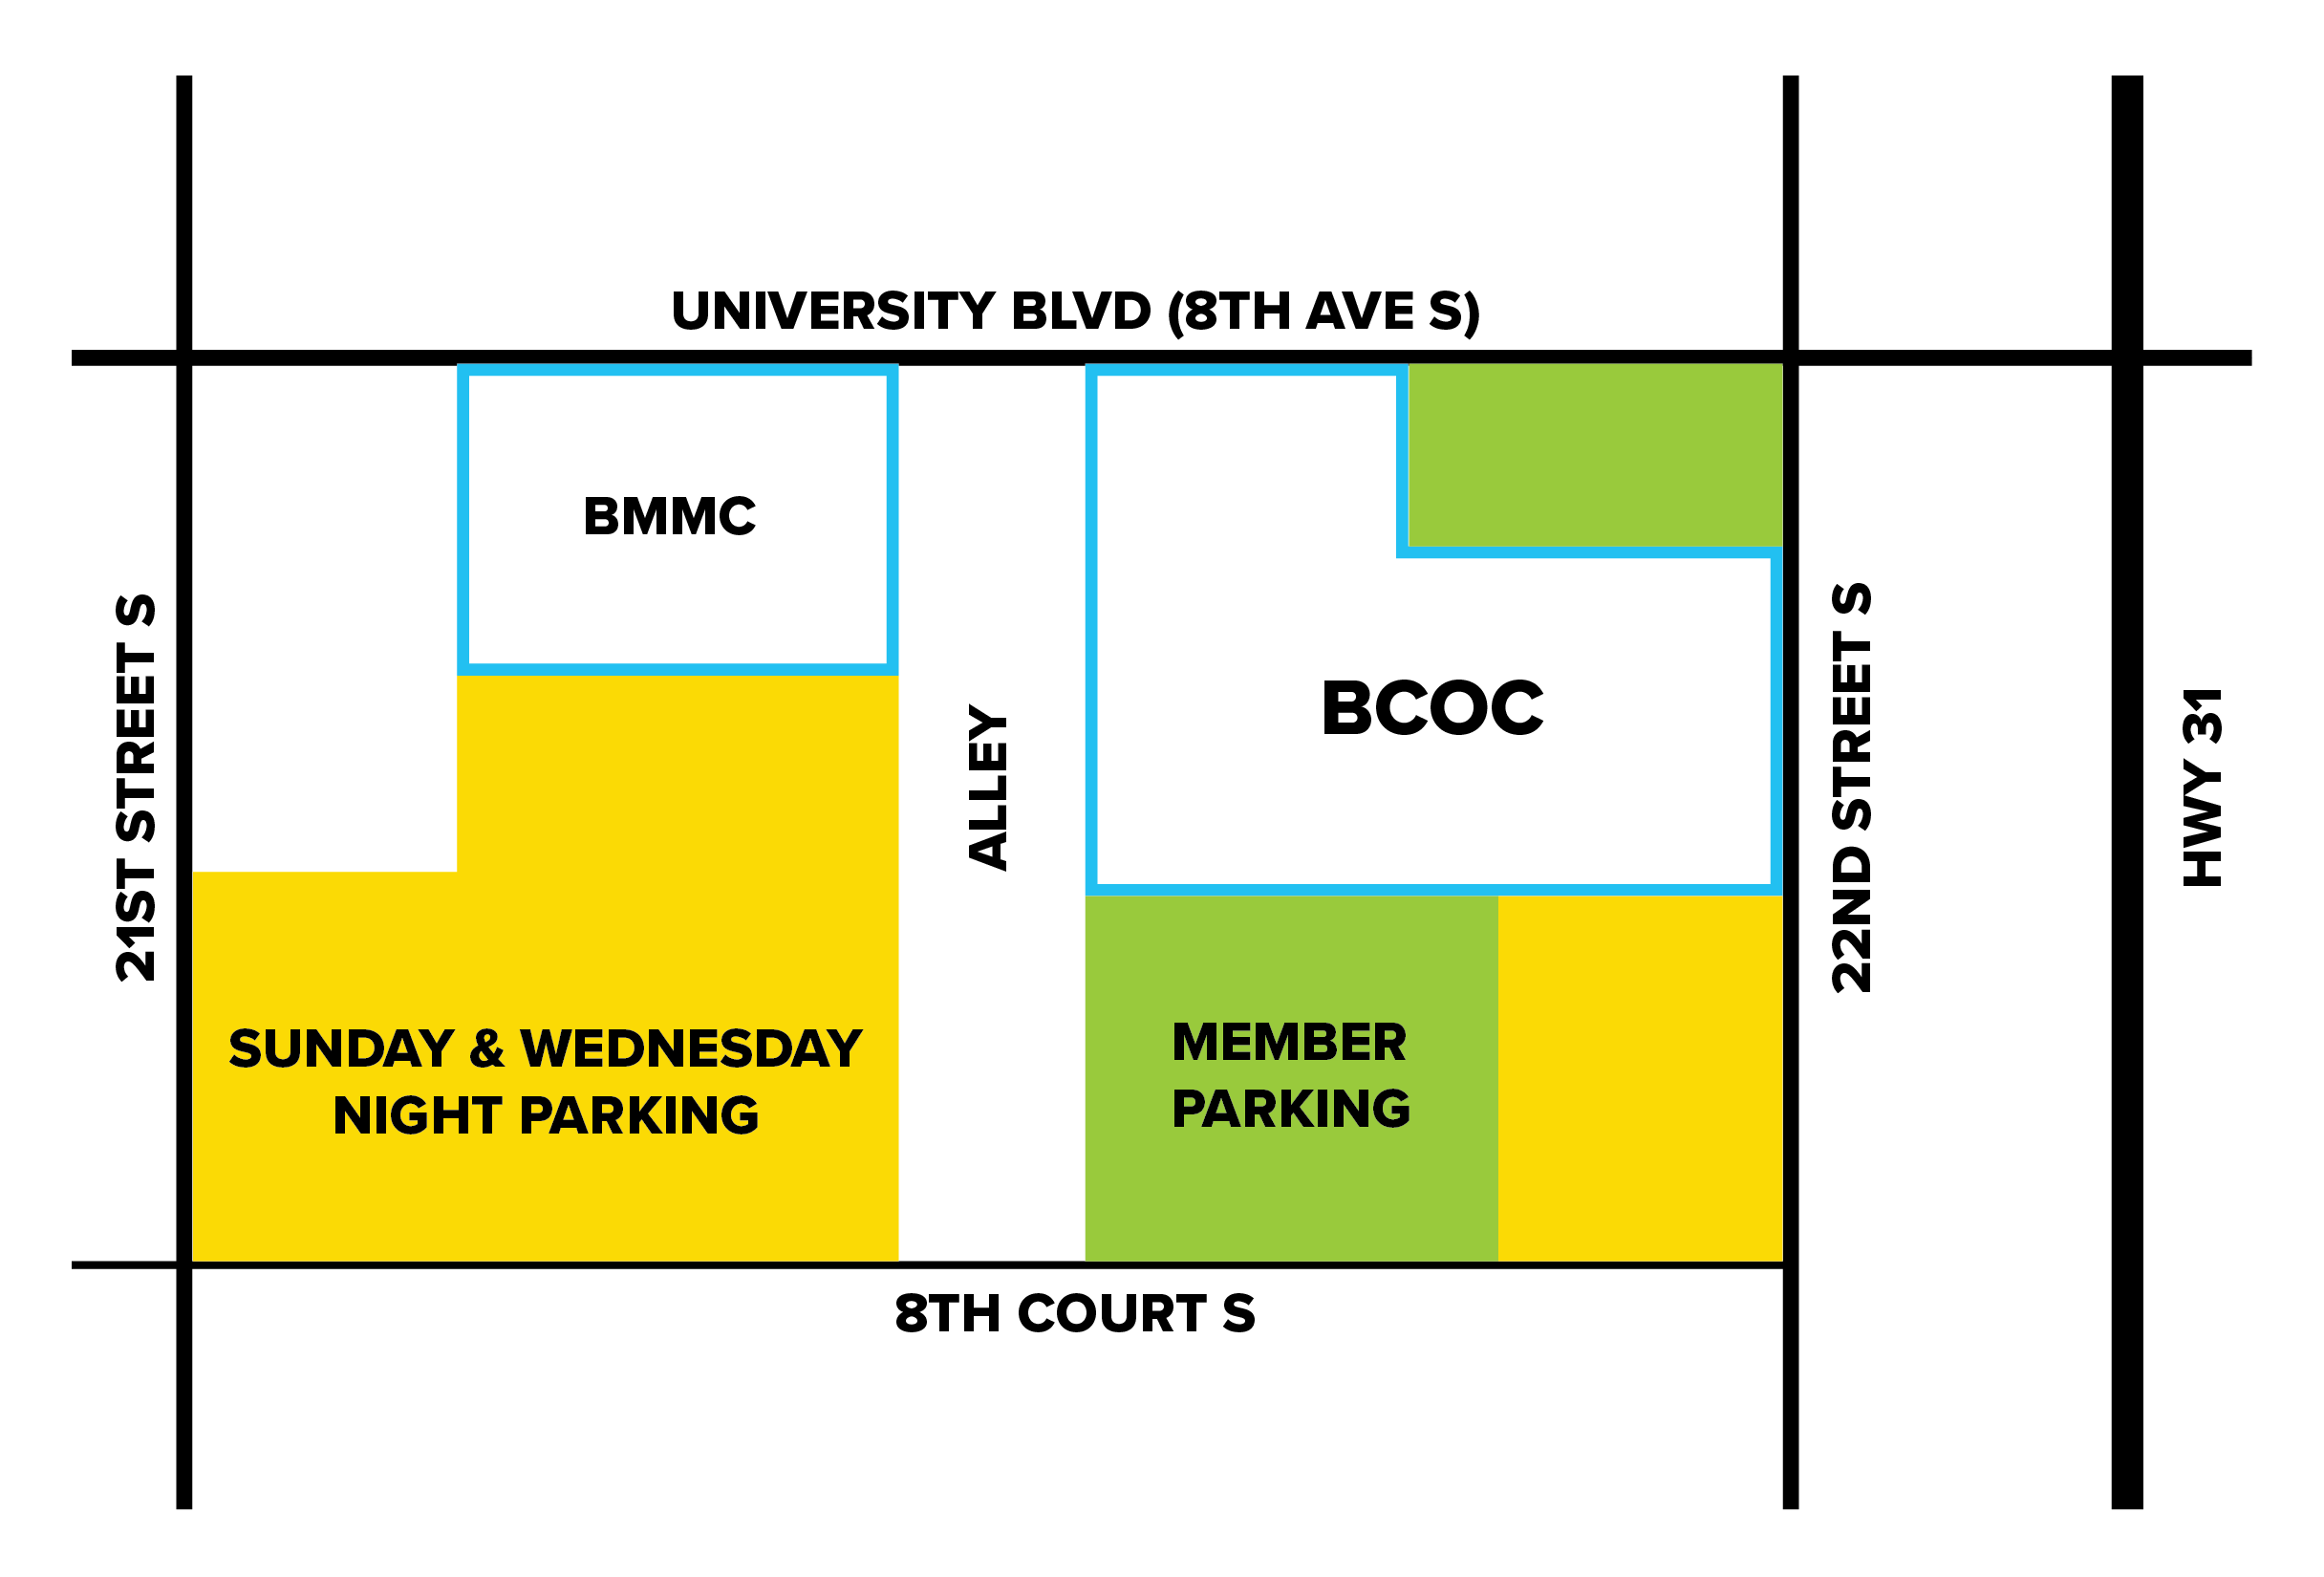 parking diagram-01.png